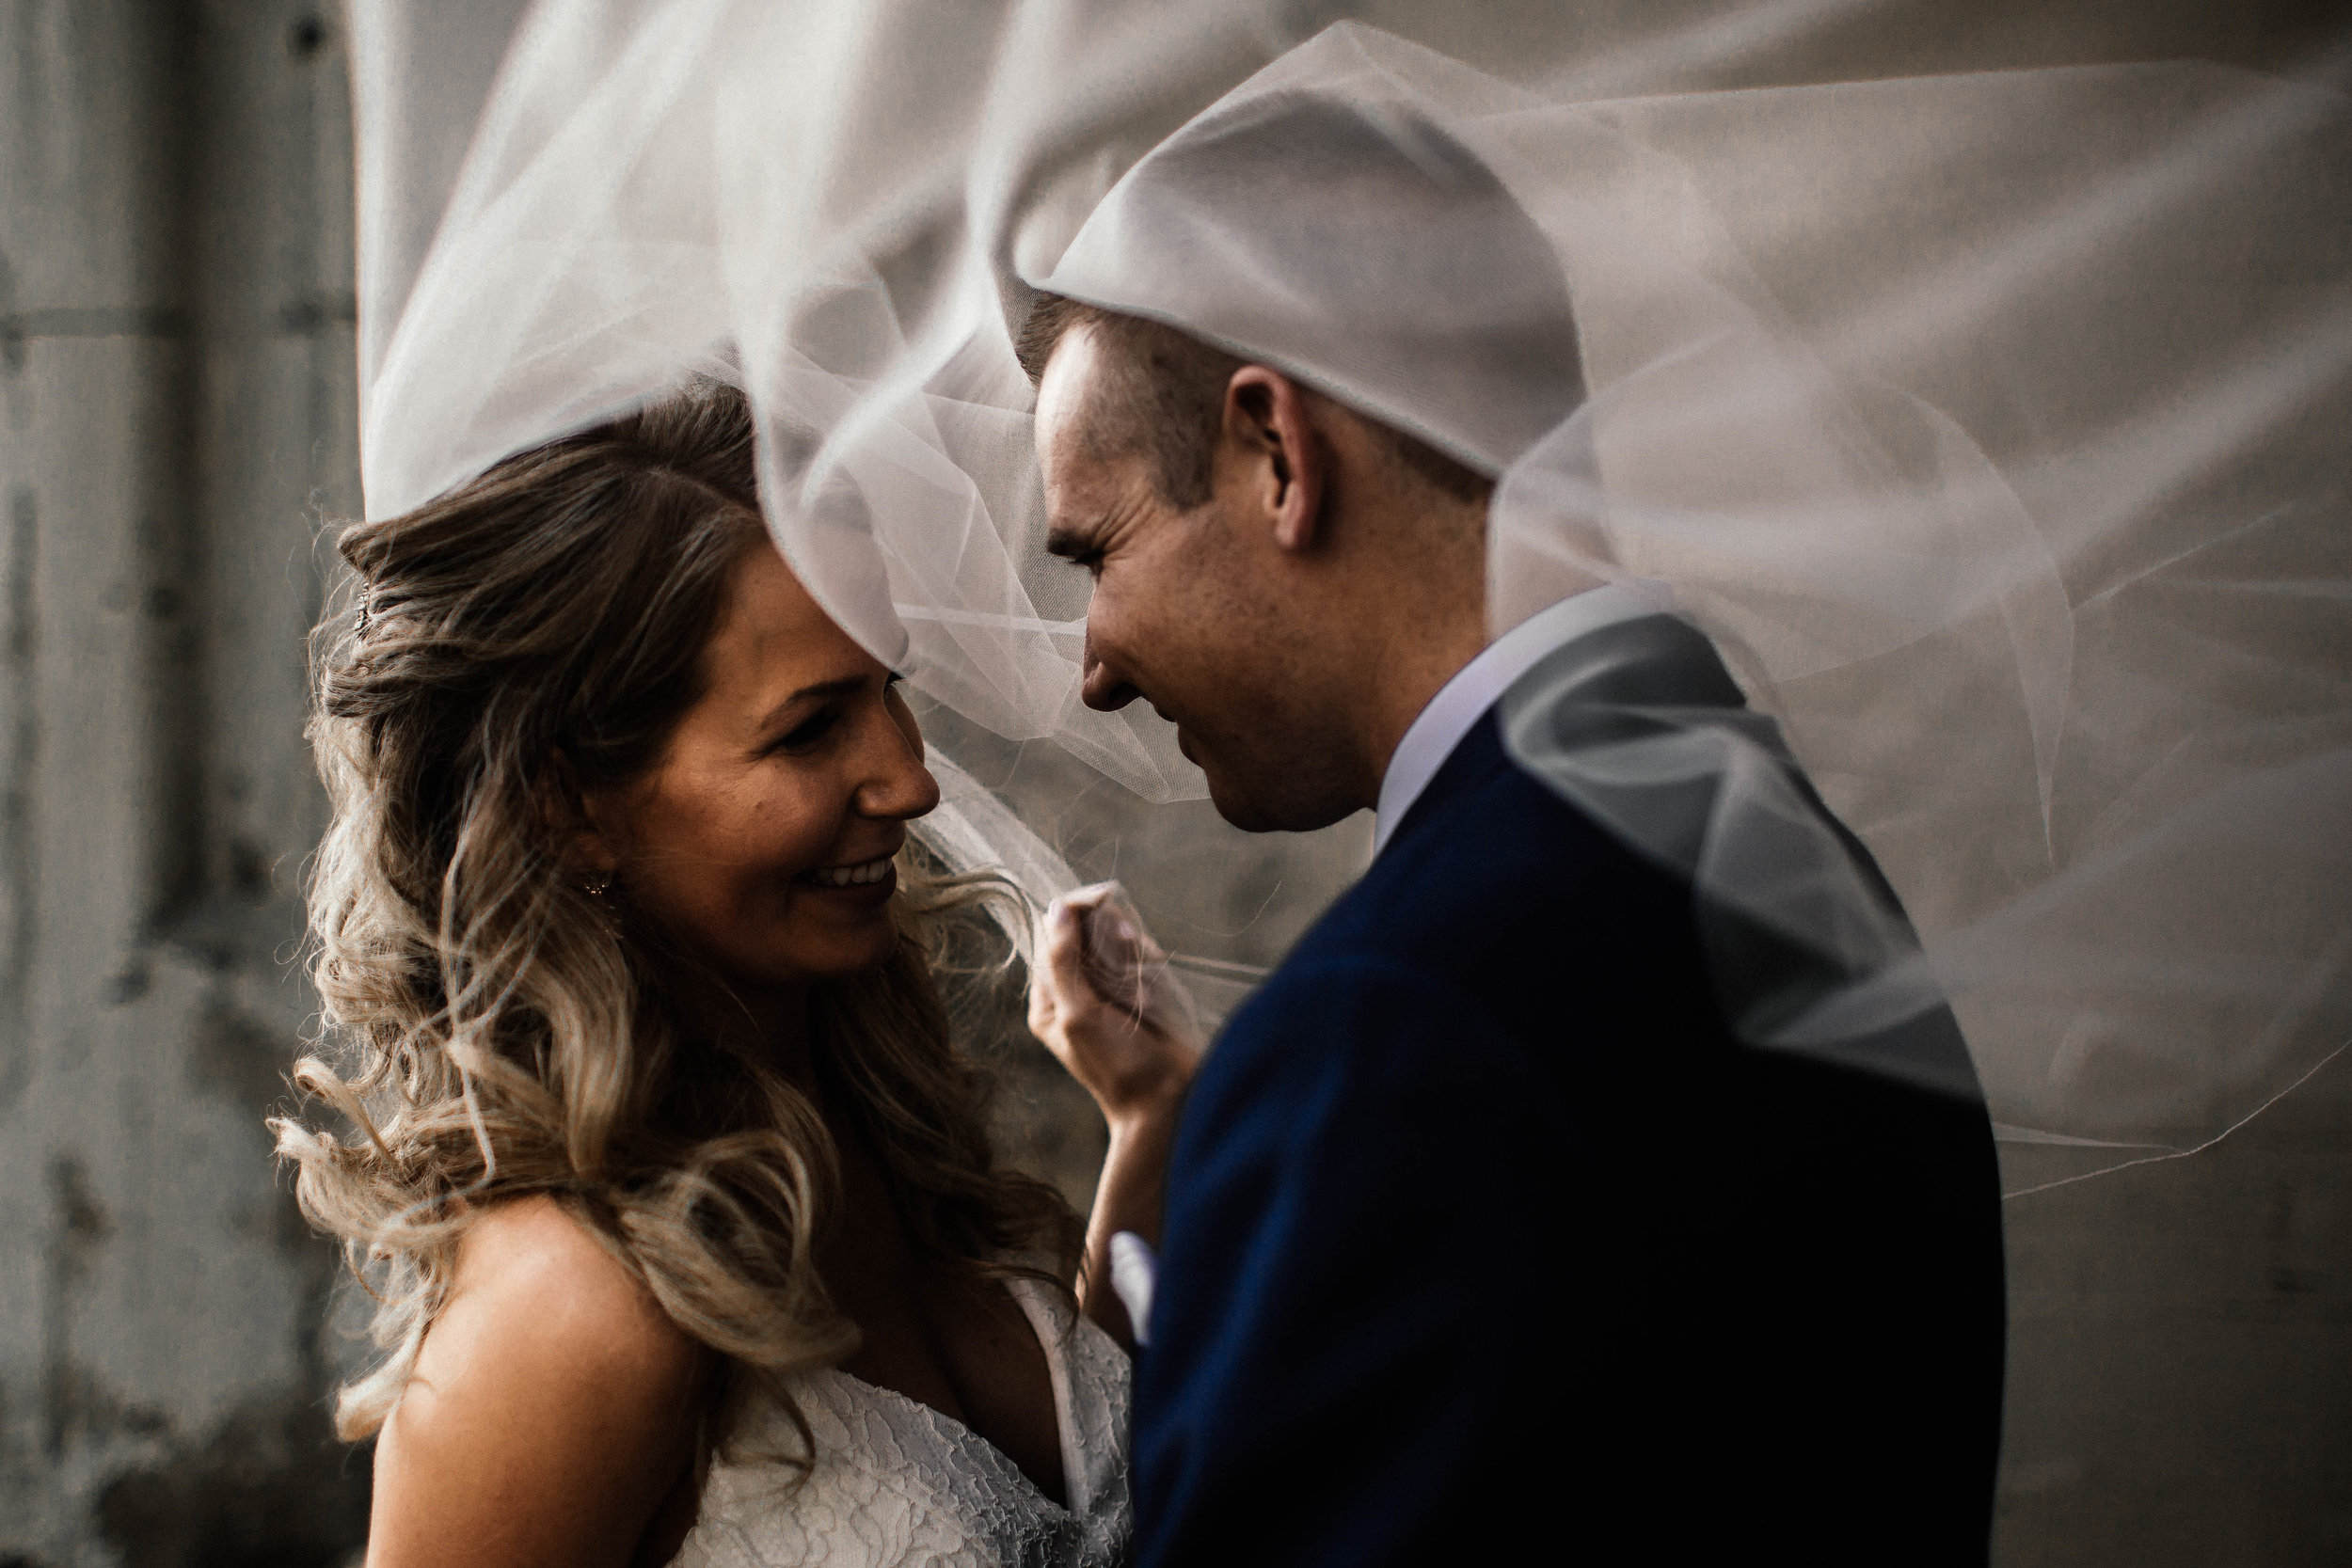 Dramatic Minneapolis Wedding Photographer